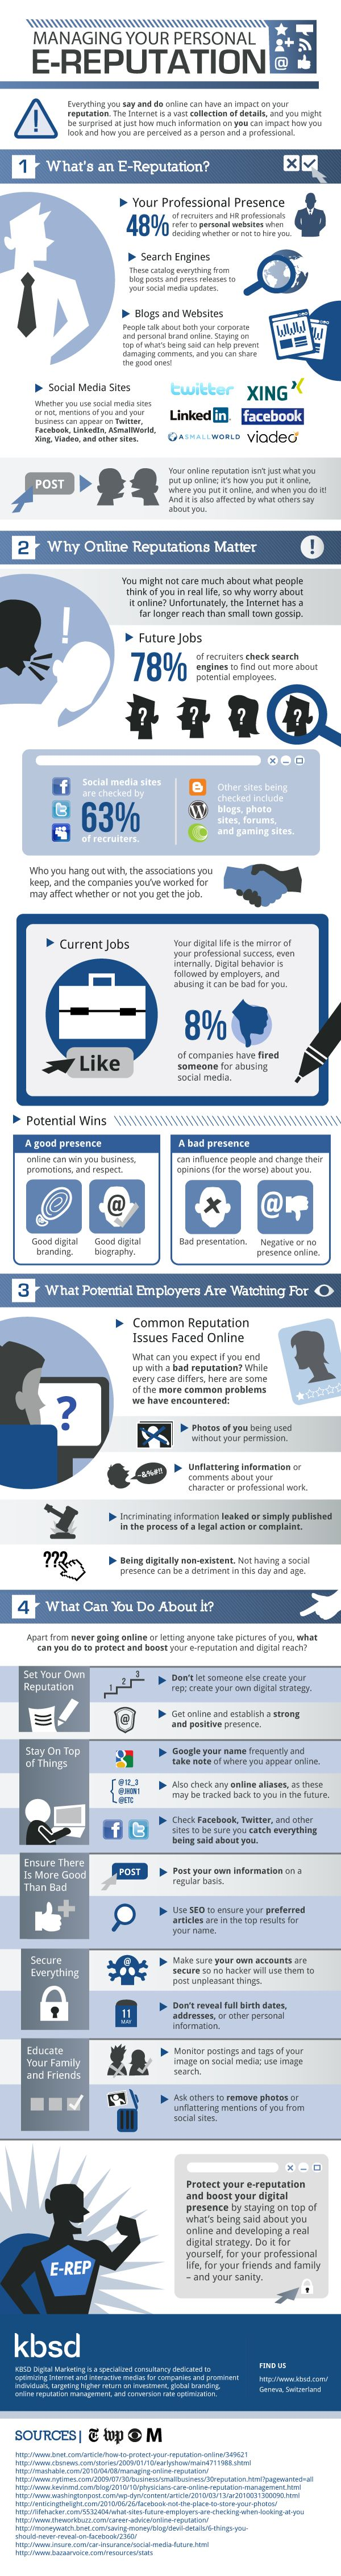 Managing your e-reputation is quite important. When you do a google search of your name, what comes up? Recruiters are definitely paying attention to your online presence, so use this infographic to make sure yours reflects the professional image you want to present.